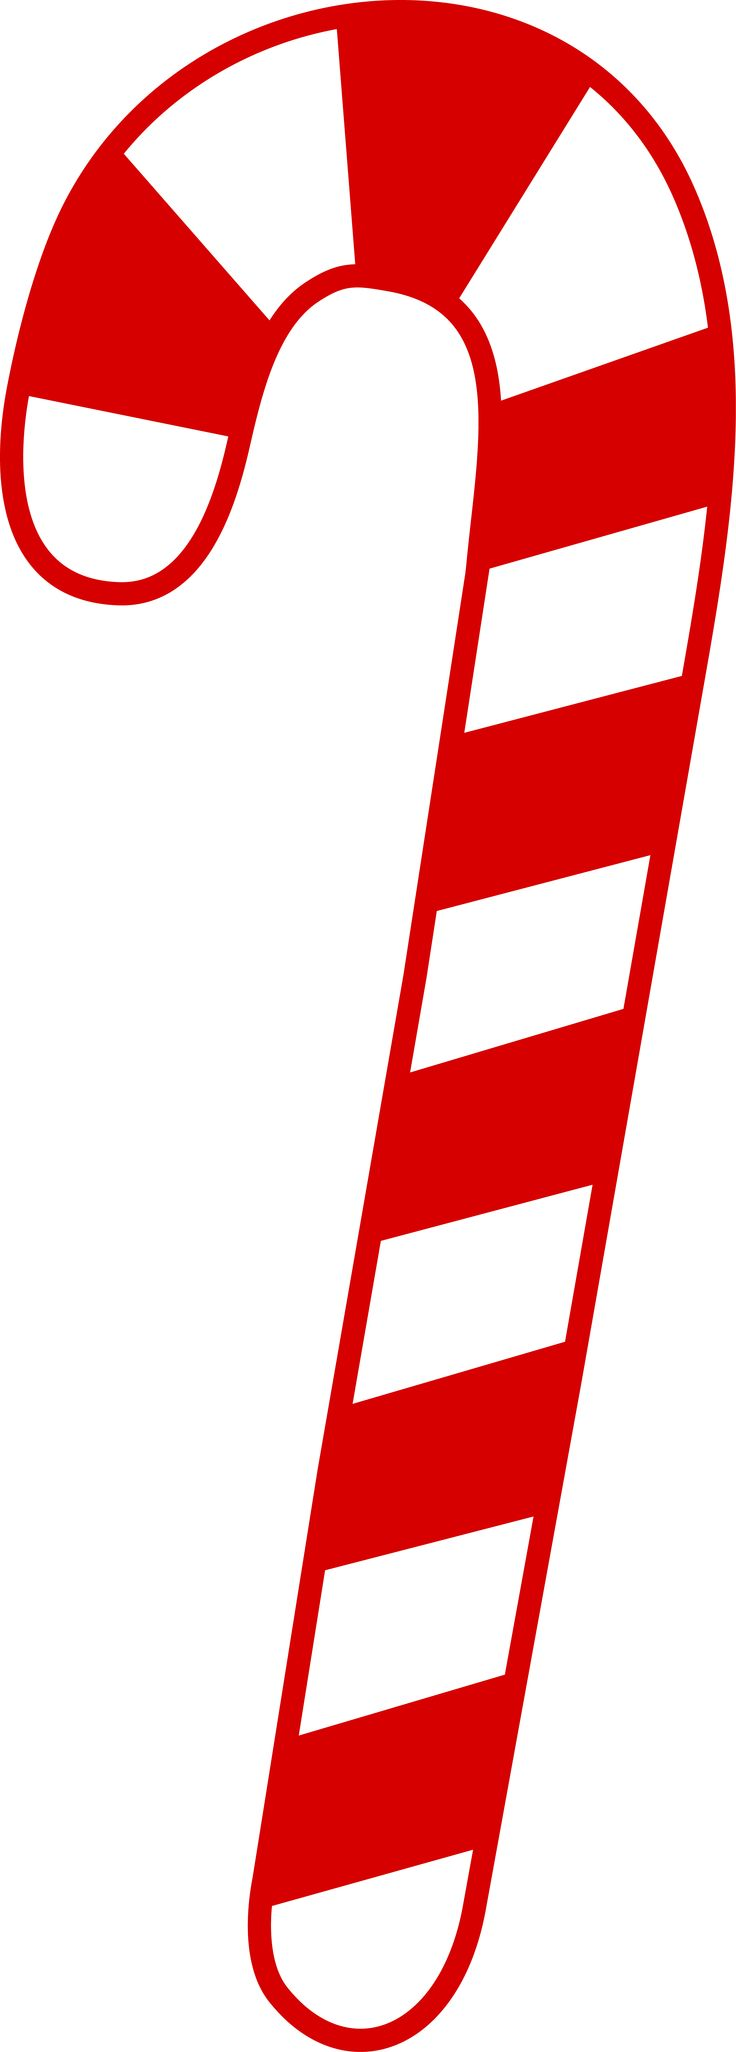 Number clipart candy cane Pinterest best about images candy